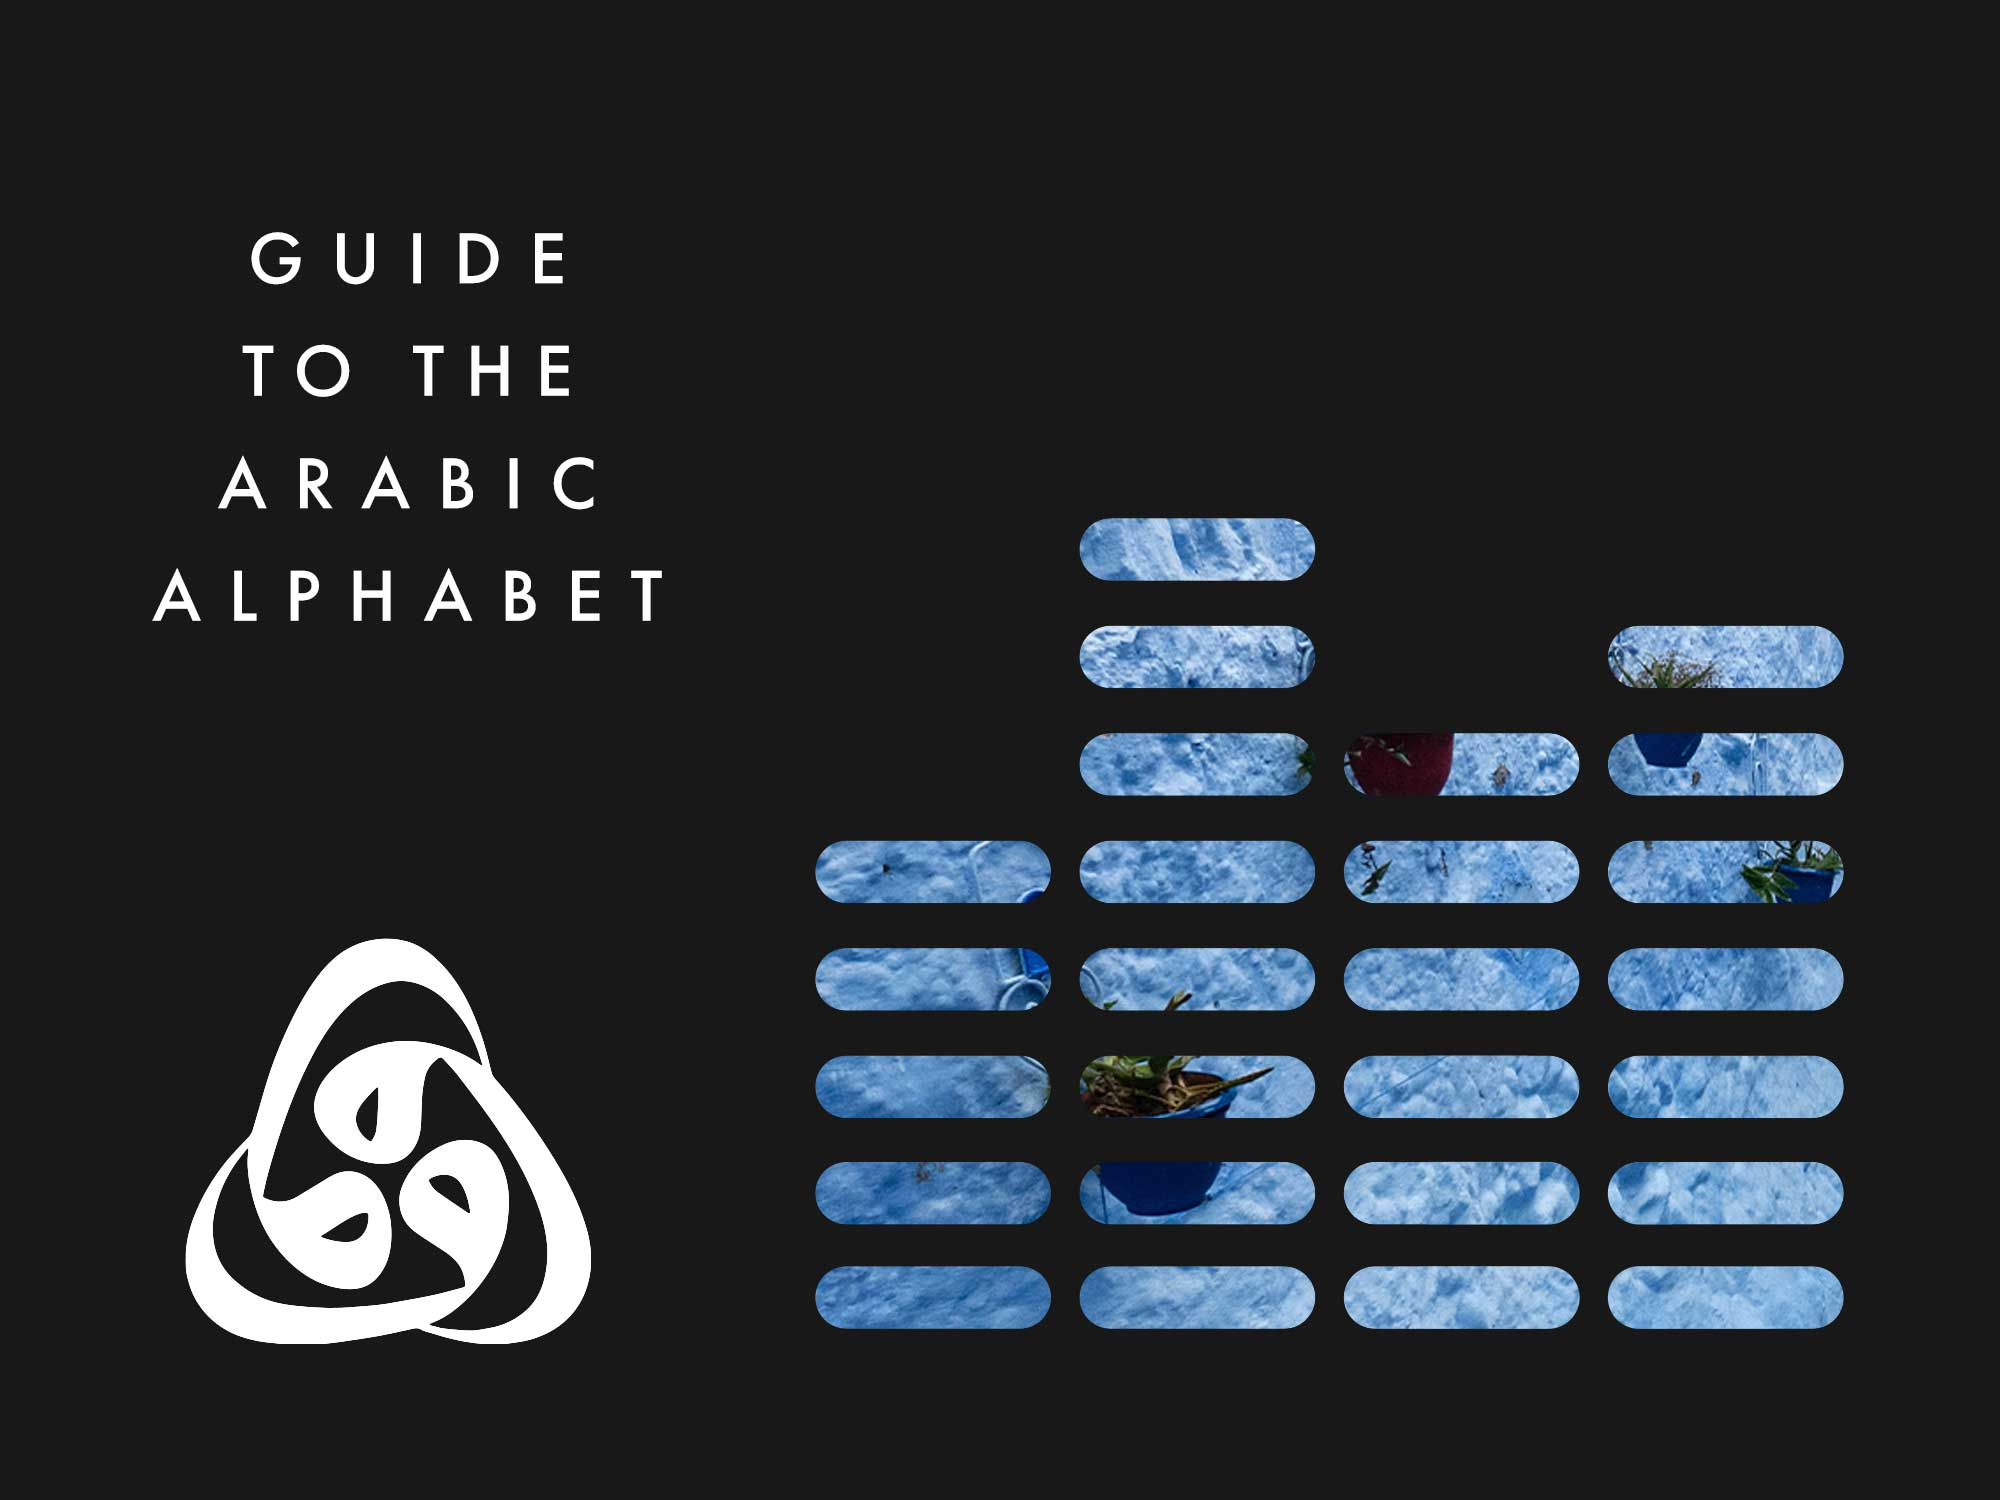 Guide to the Arabic Alphabet Image